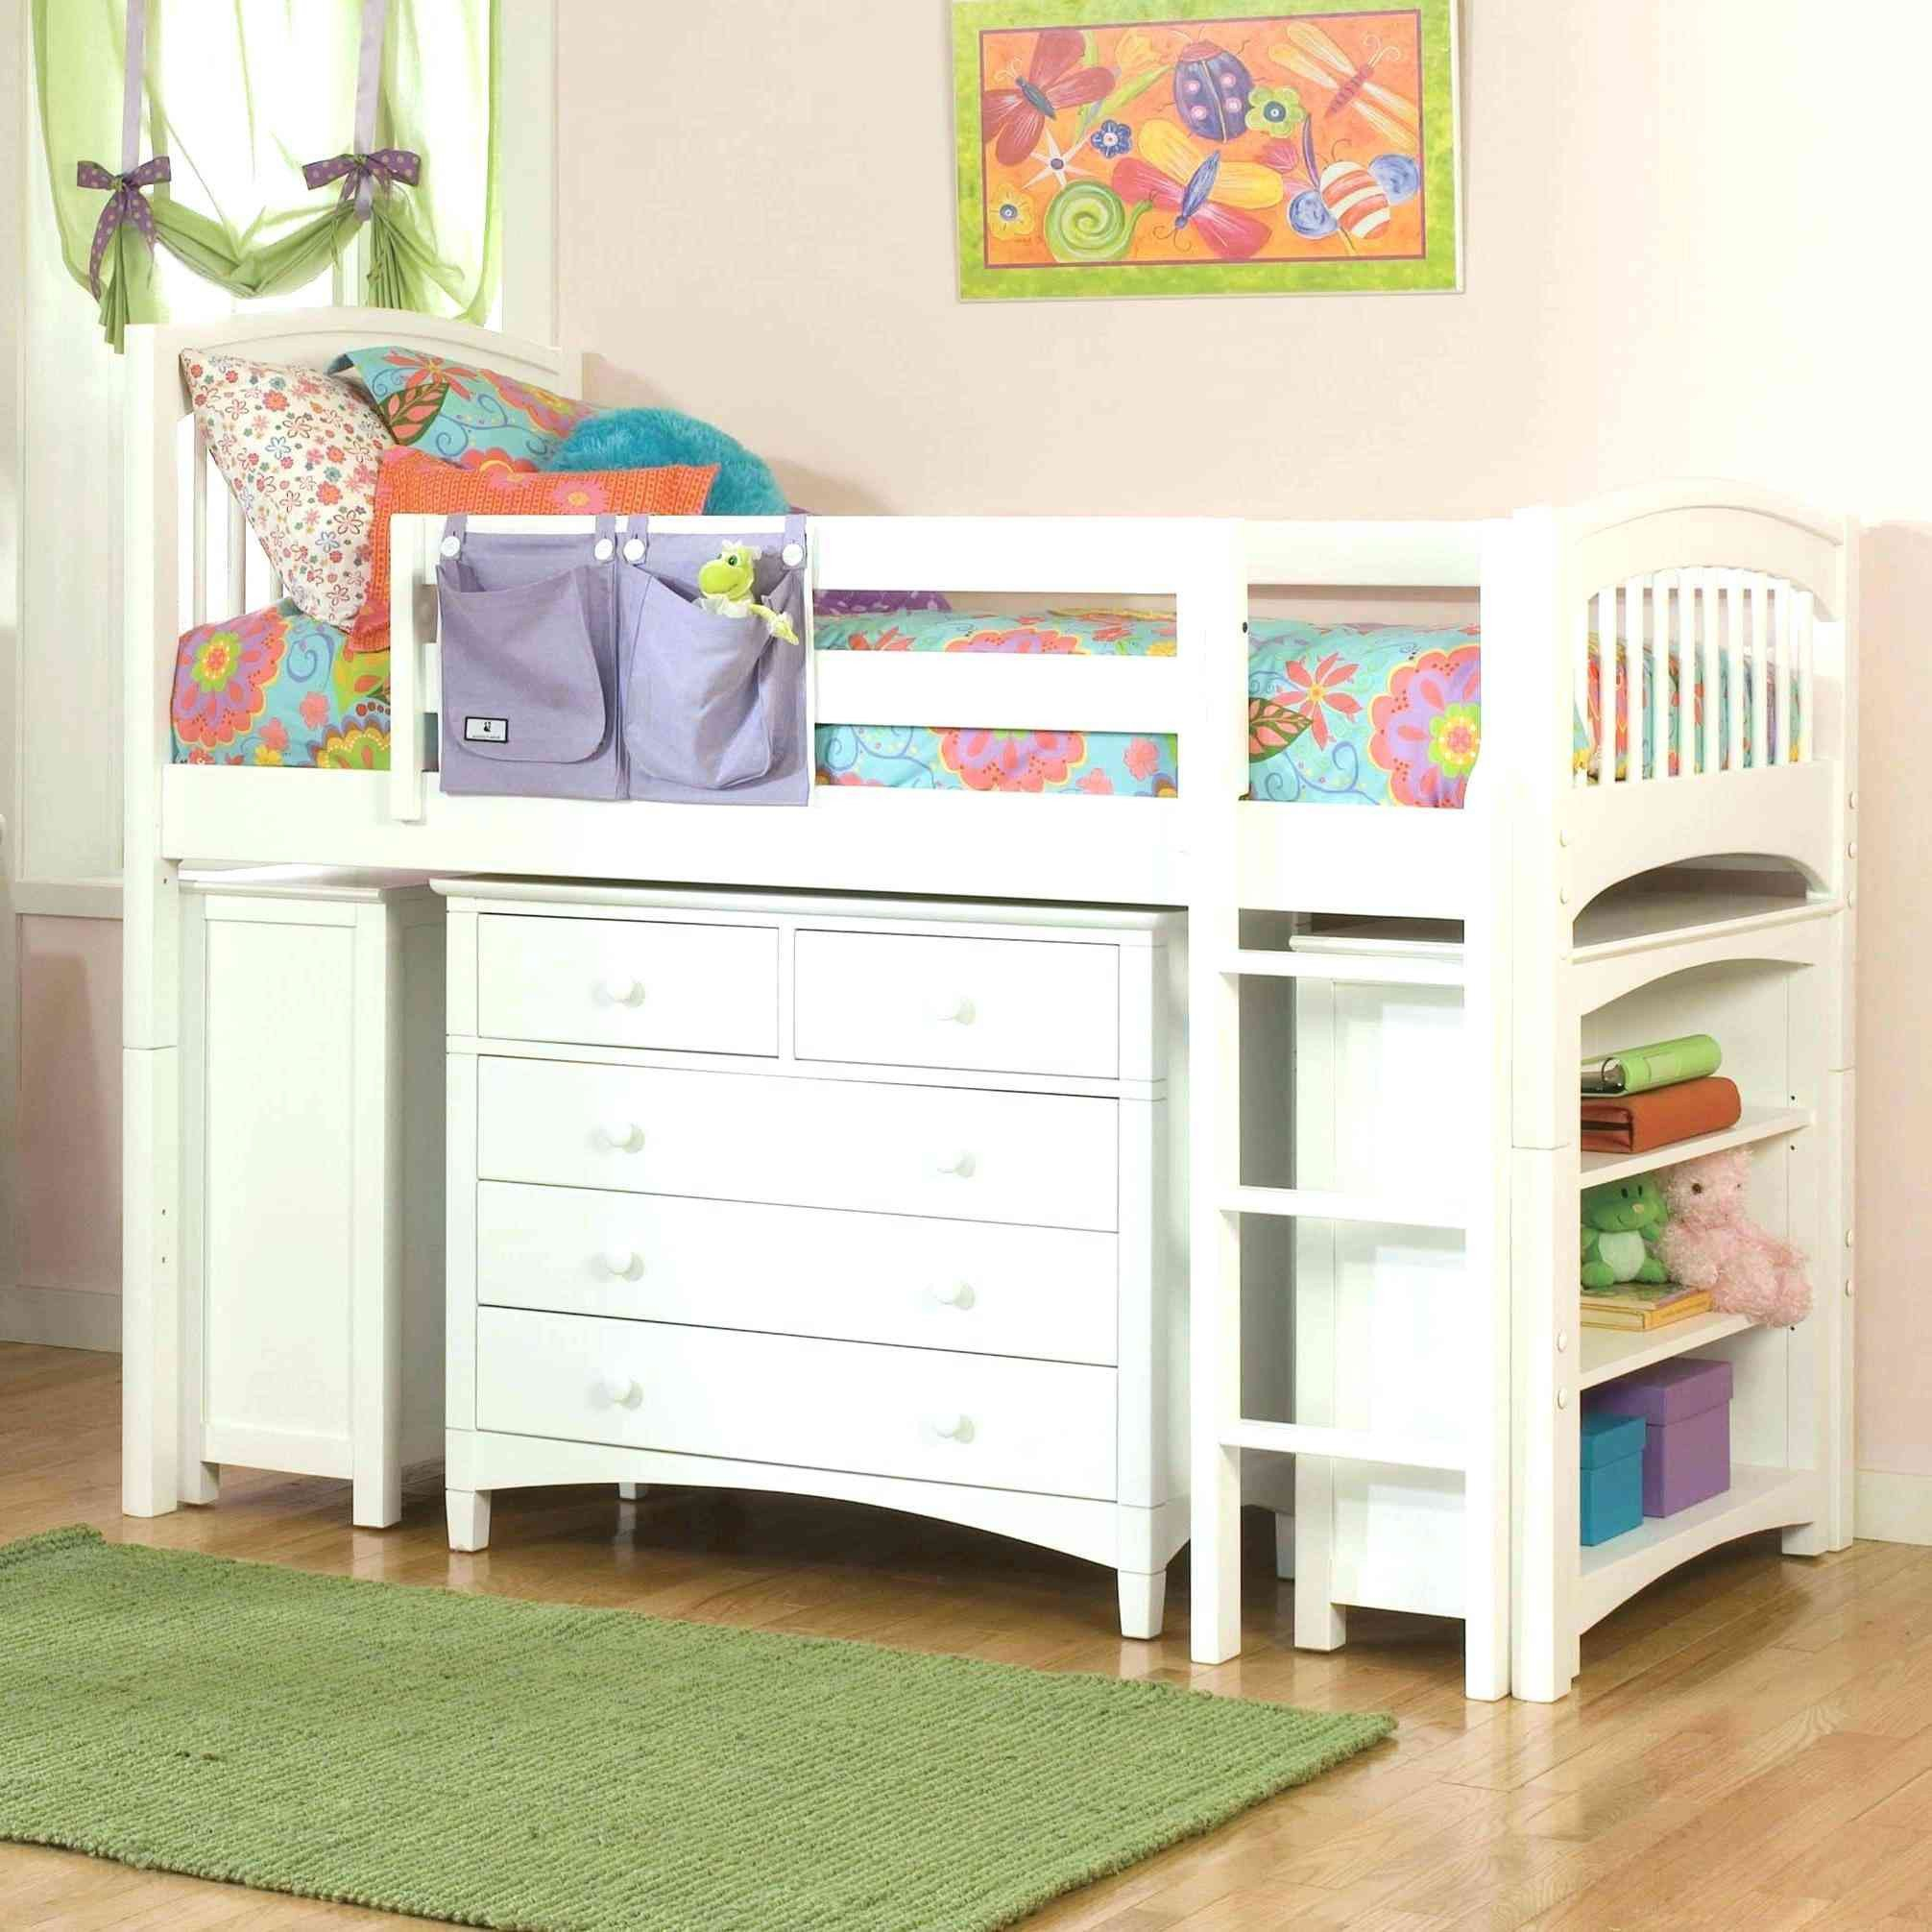 Rooms to Go Kids Bedroom Set Unique Bedroom Charming Roomstogokids with Beautiful Decor for